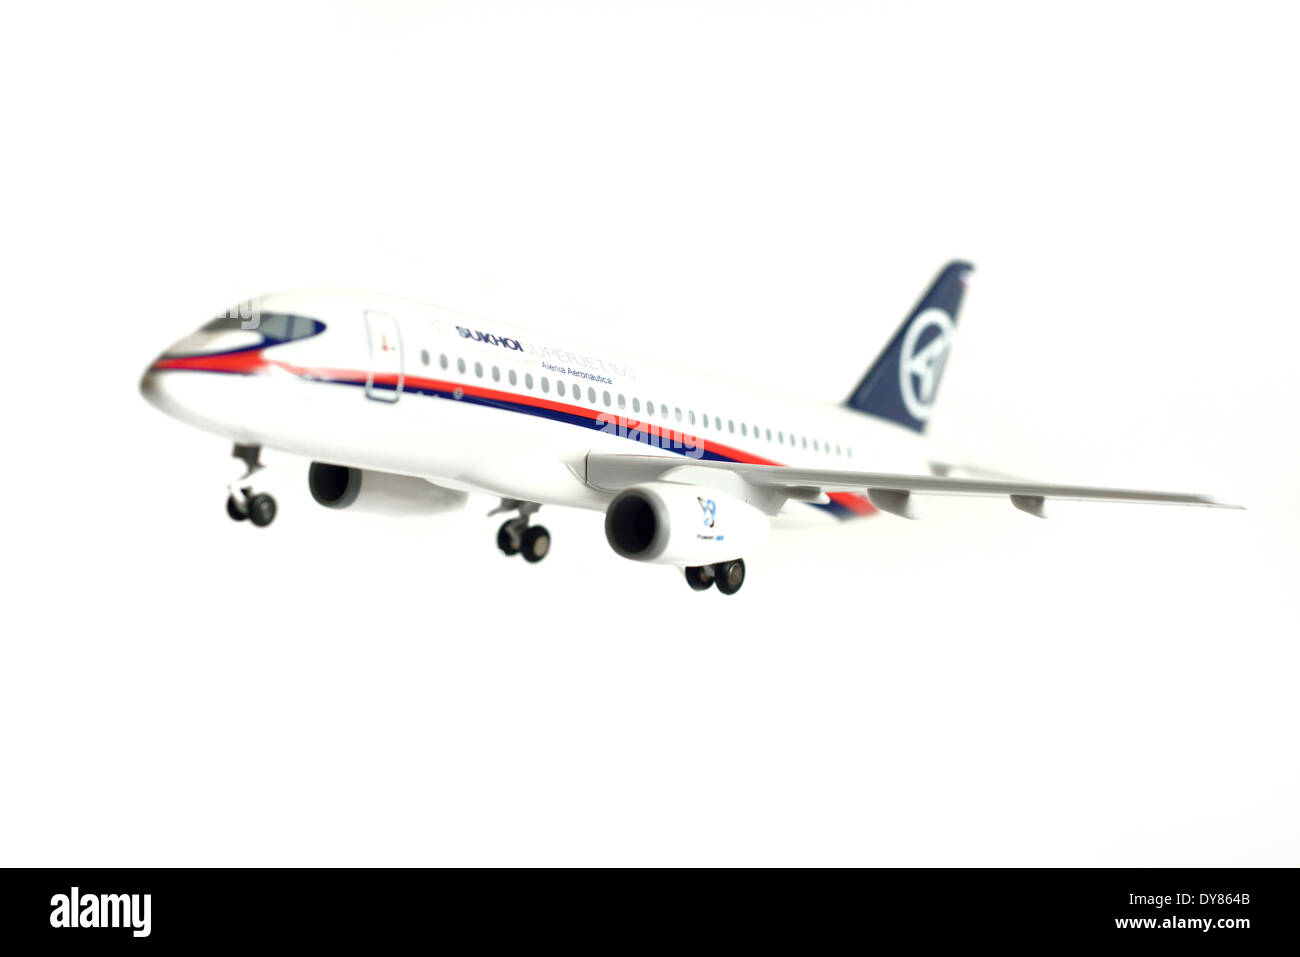 scale model 1:100 of Sukhoi Superjet 100 - Stock Image